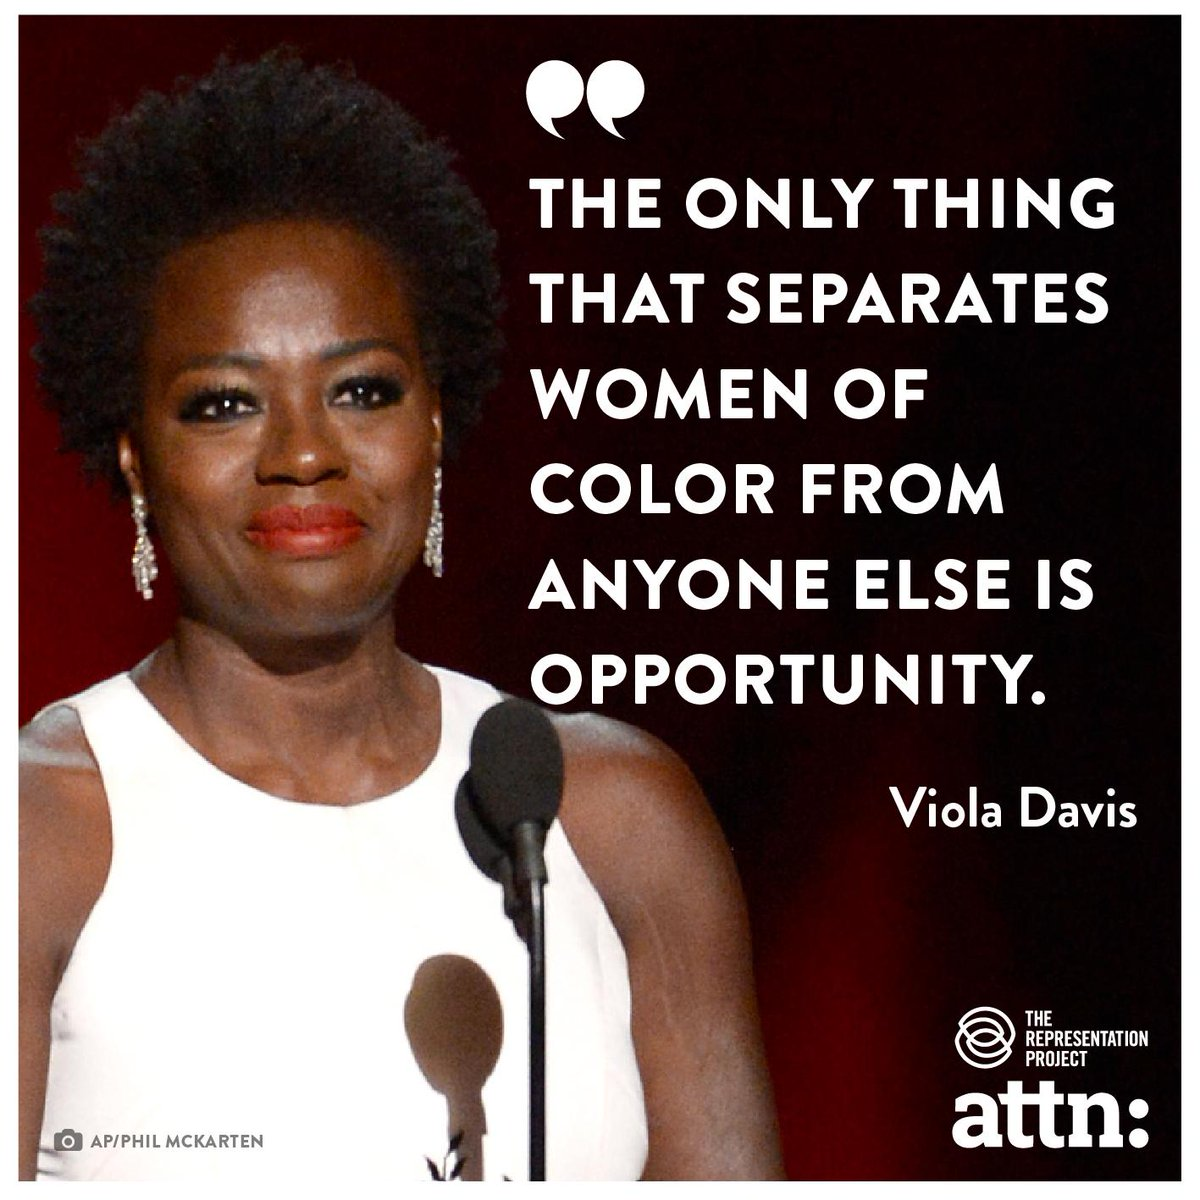 """""""The only thing that separates women of color from anyone else is opportunity."""" #ViolaDavis  http://t.co/BVsHOo3iIq http://t.co/53Wf34zwYY"""